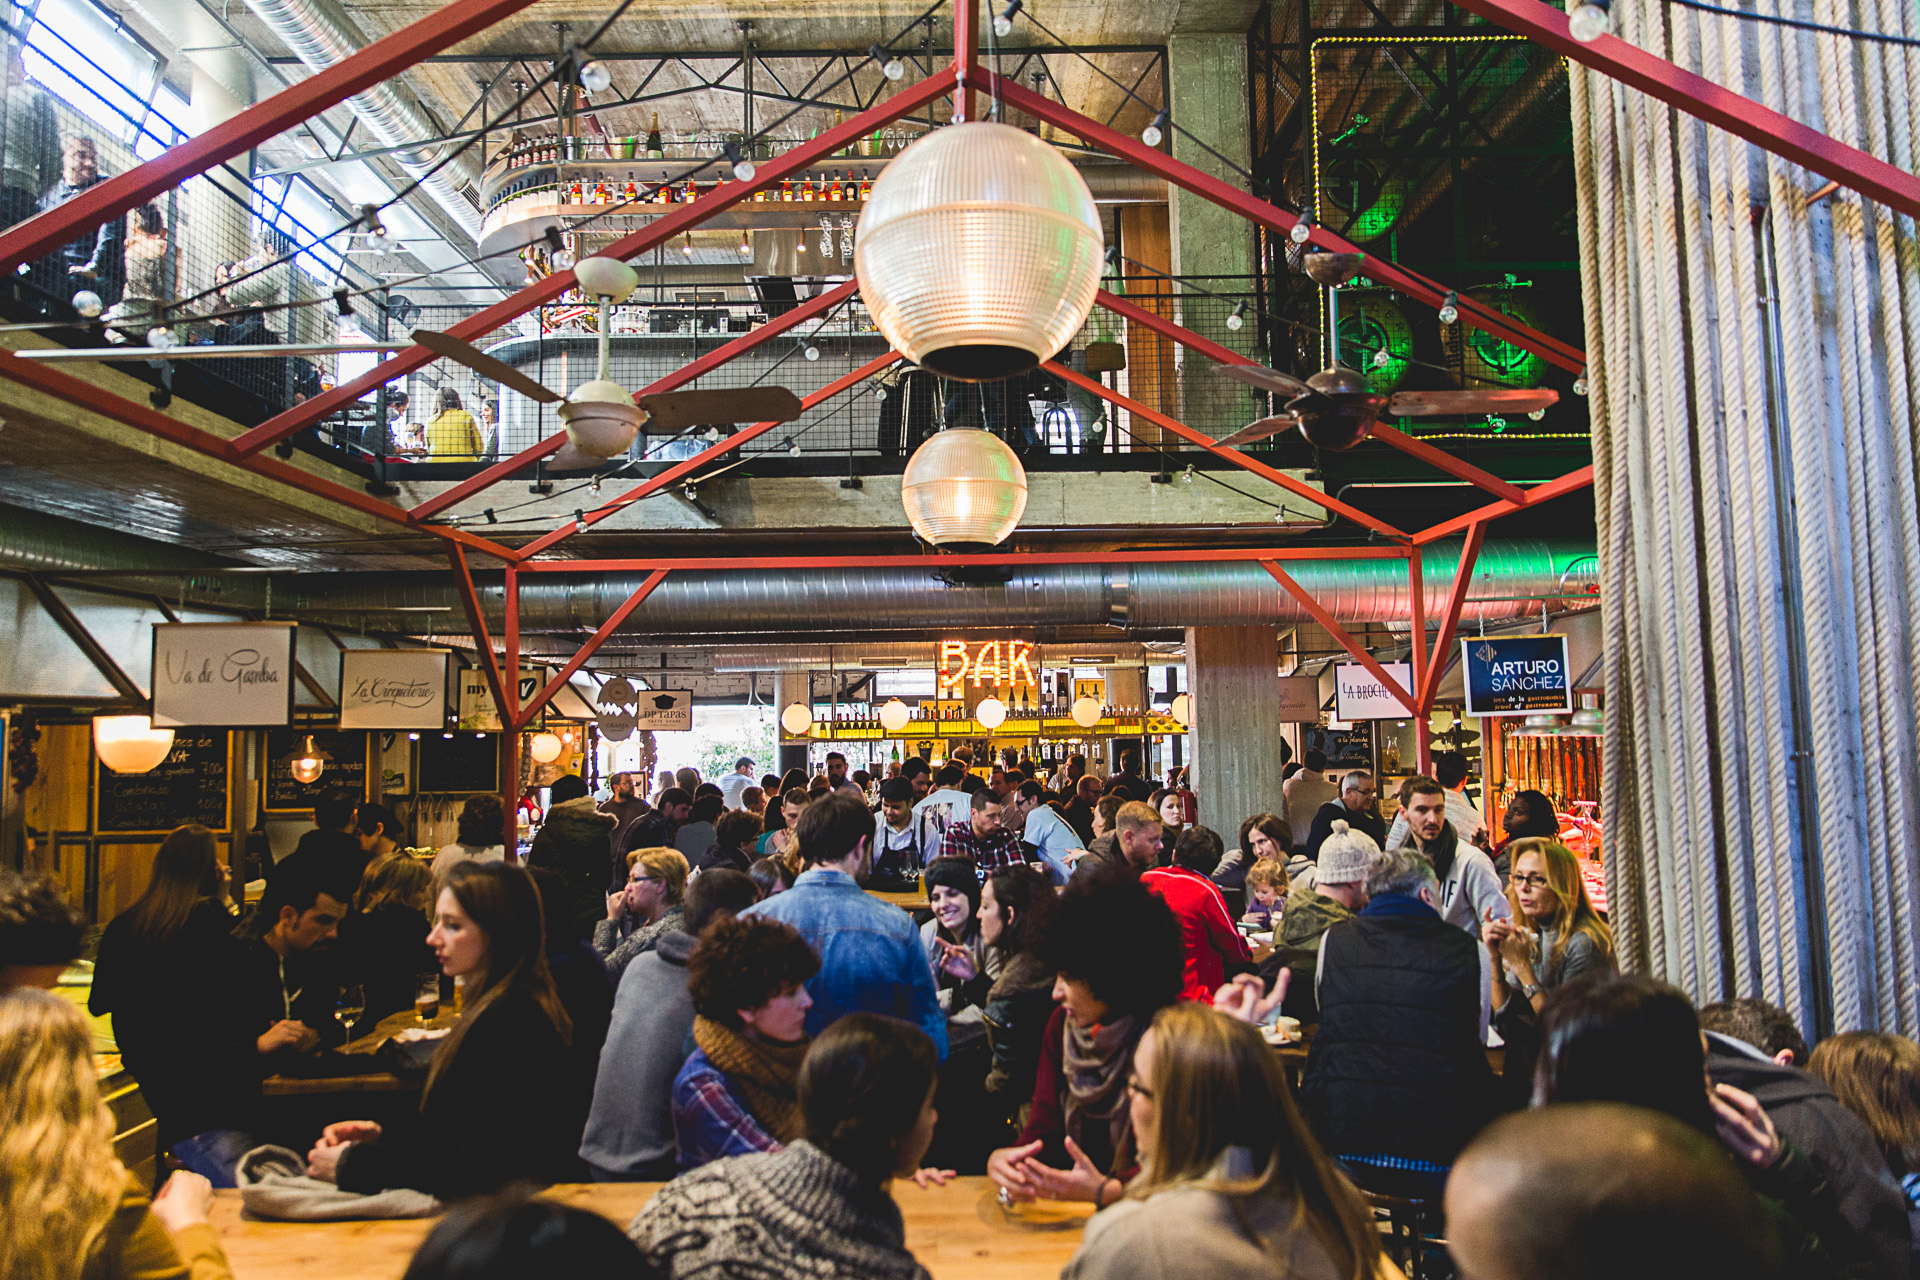 Indoor Street Food Markets In Europe For Cheap City Breaks